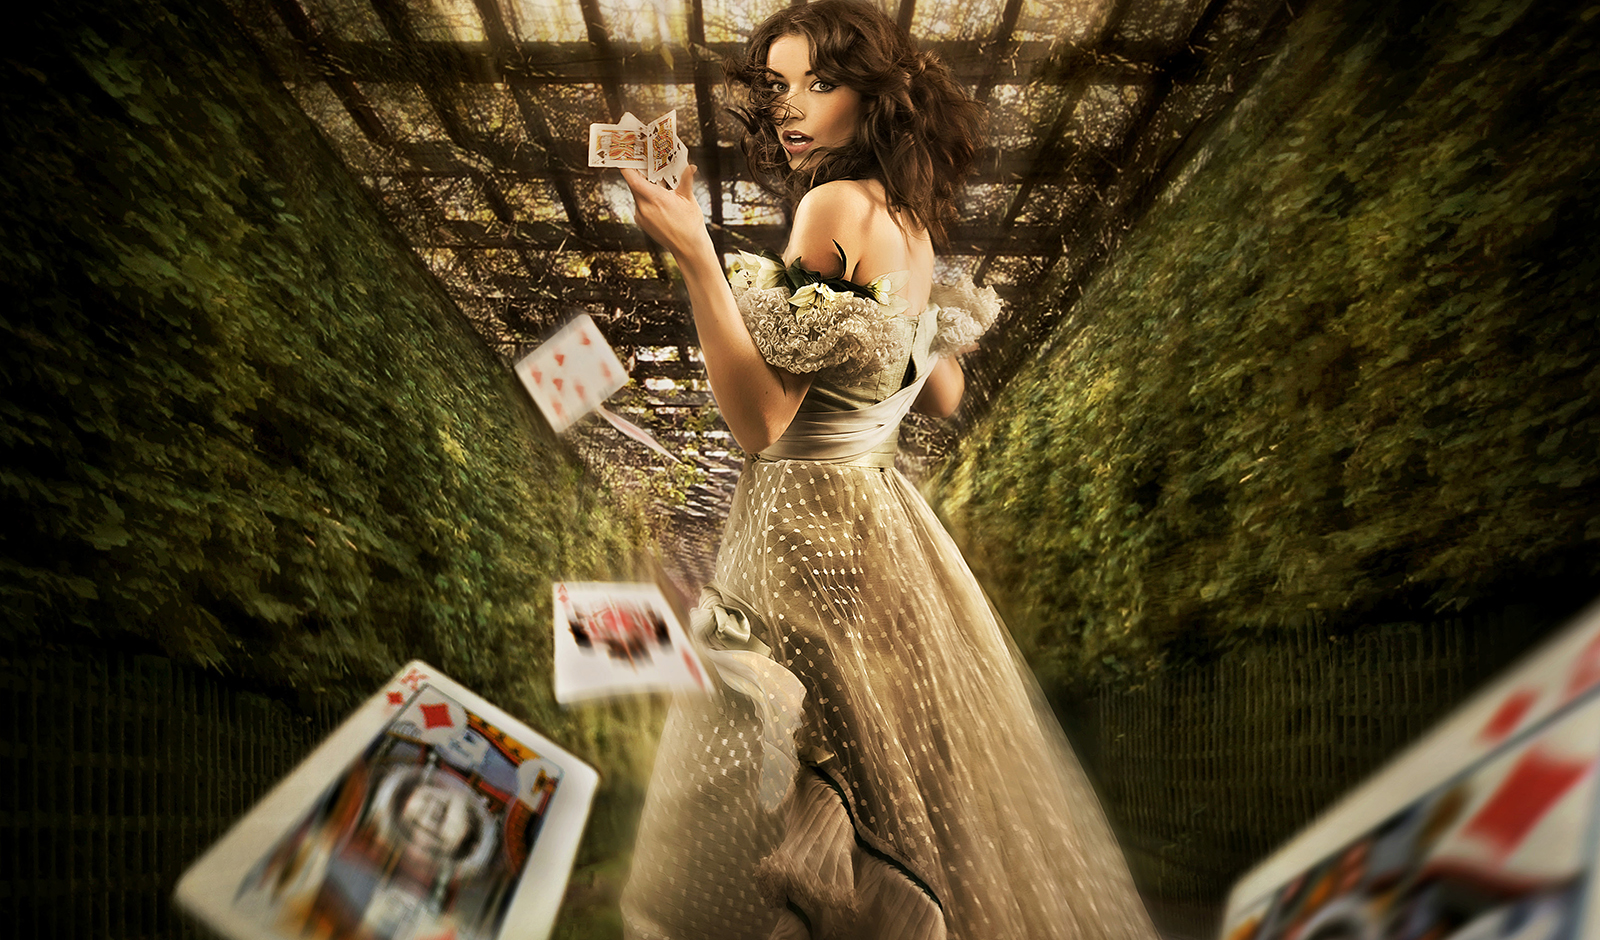 poker-queens-untold-movie-story-main-image